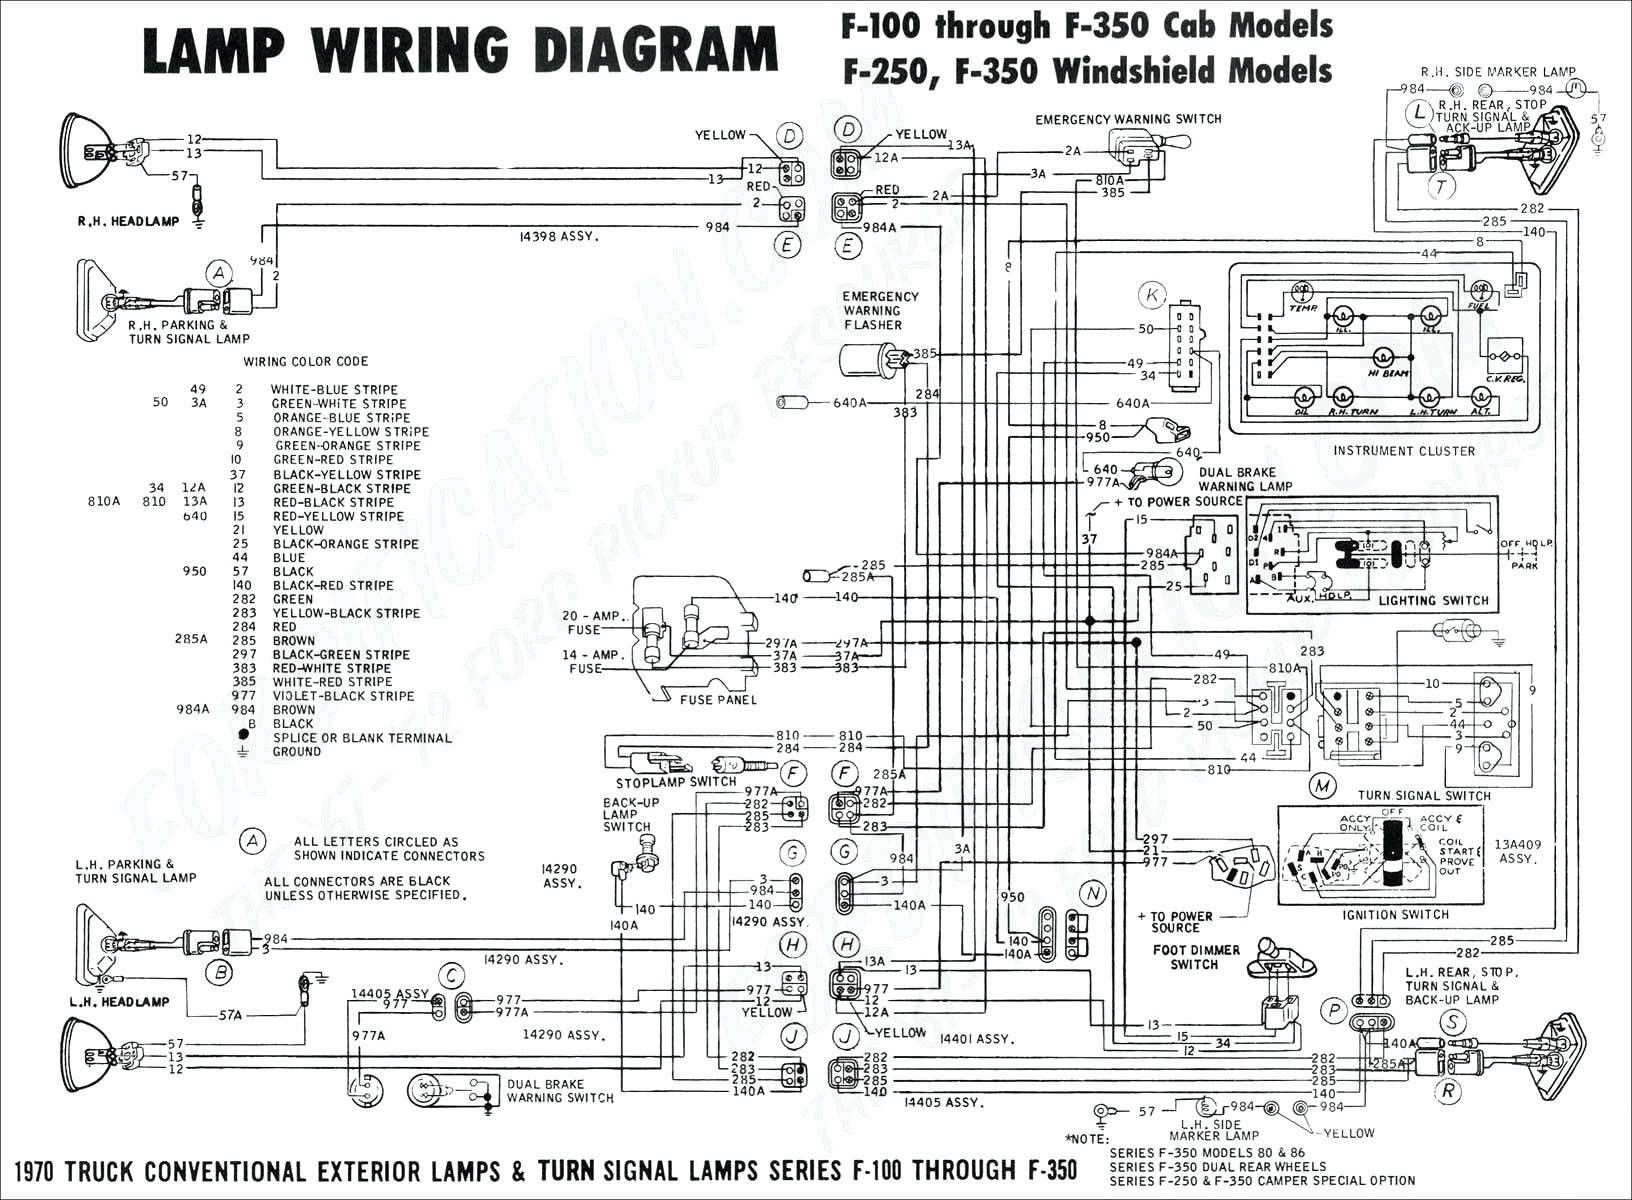 2000 Ford F350 Tail Light Wiring Diagram Ford Super Duty Diagrama De Circuito Electrico Ford F250